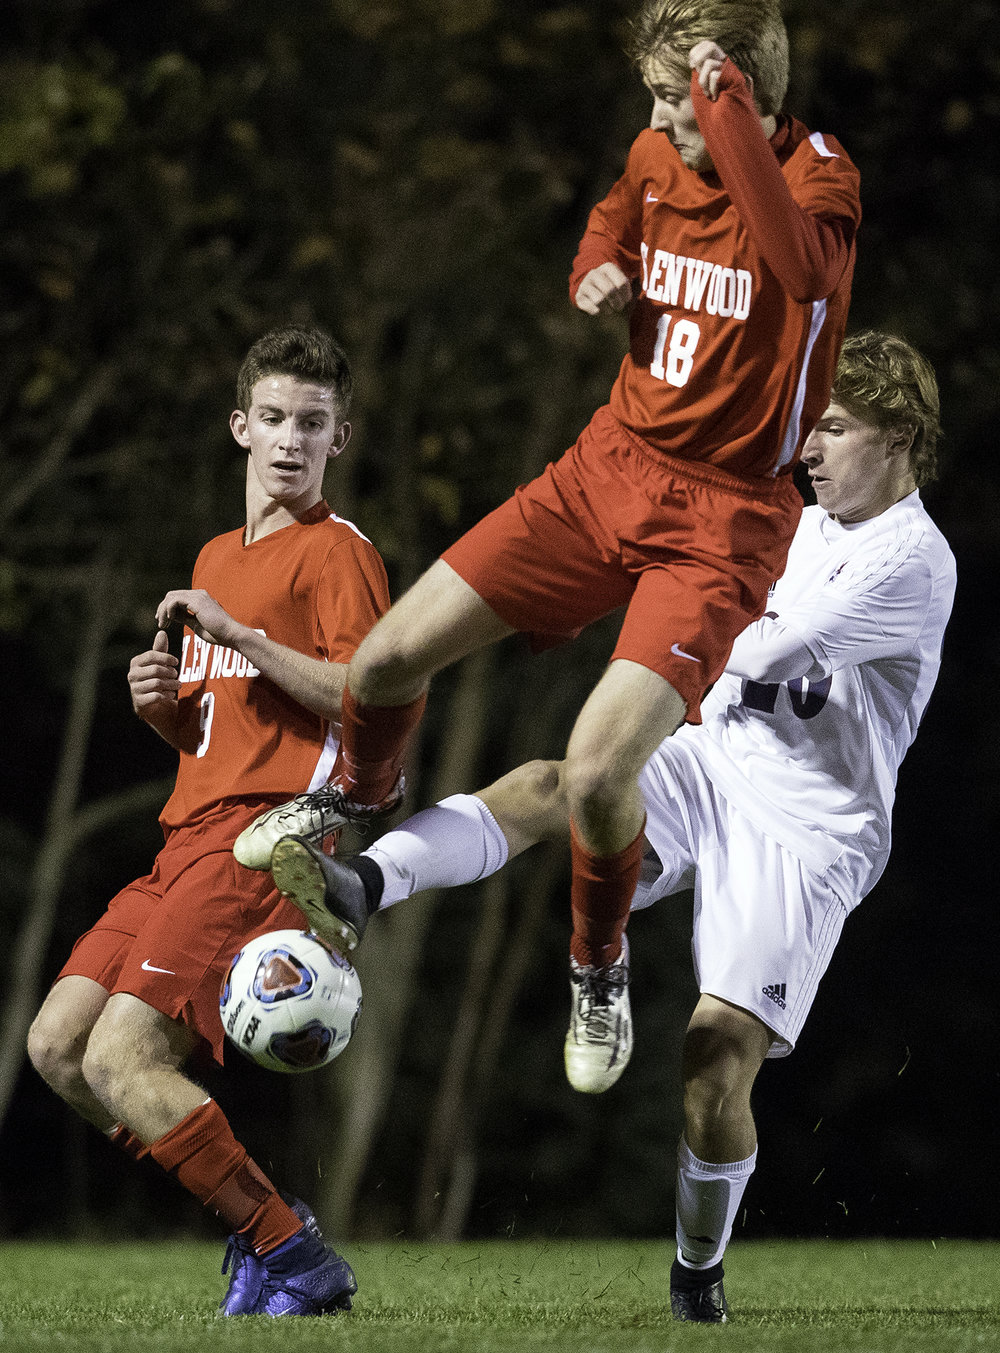 Waterloo Gibault's Adam Stearns kicks the ball upfield as Glenwood's Ethan Childress defends during the University of Illinois Springfield Supersectional at Kiwanis Stadium Tuesday, Oct. 31, 2017.  [Ted Schurter/The State Journal-Register]